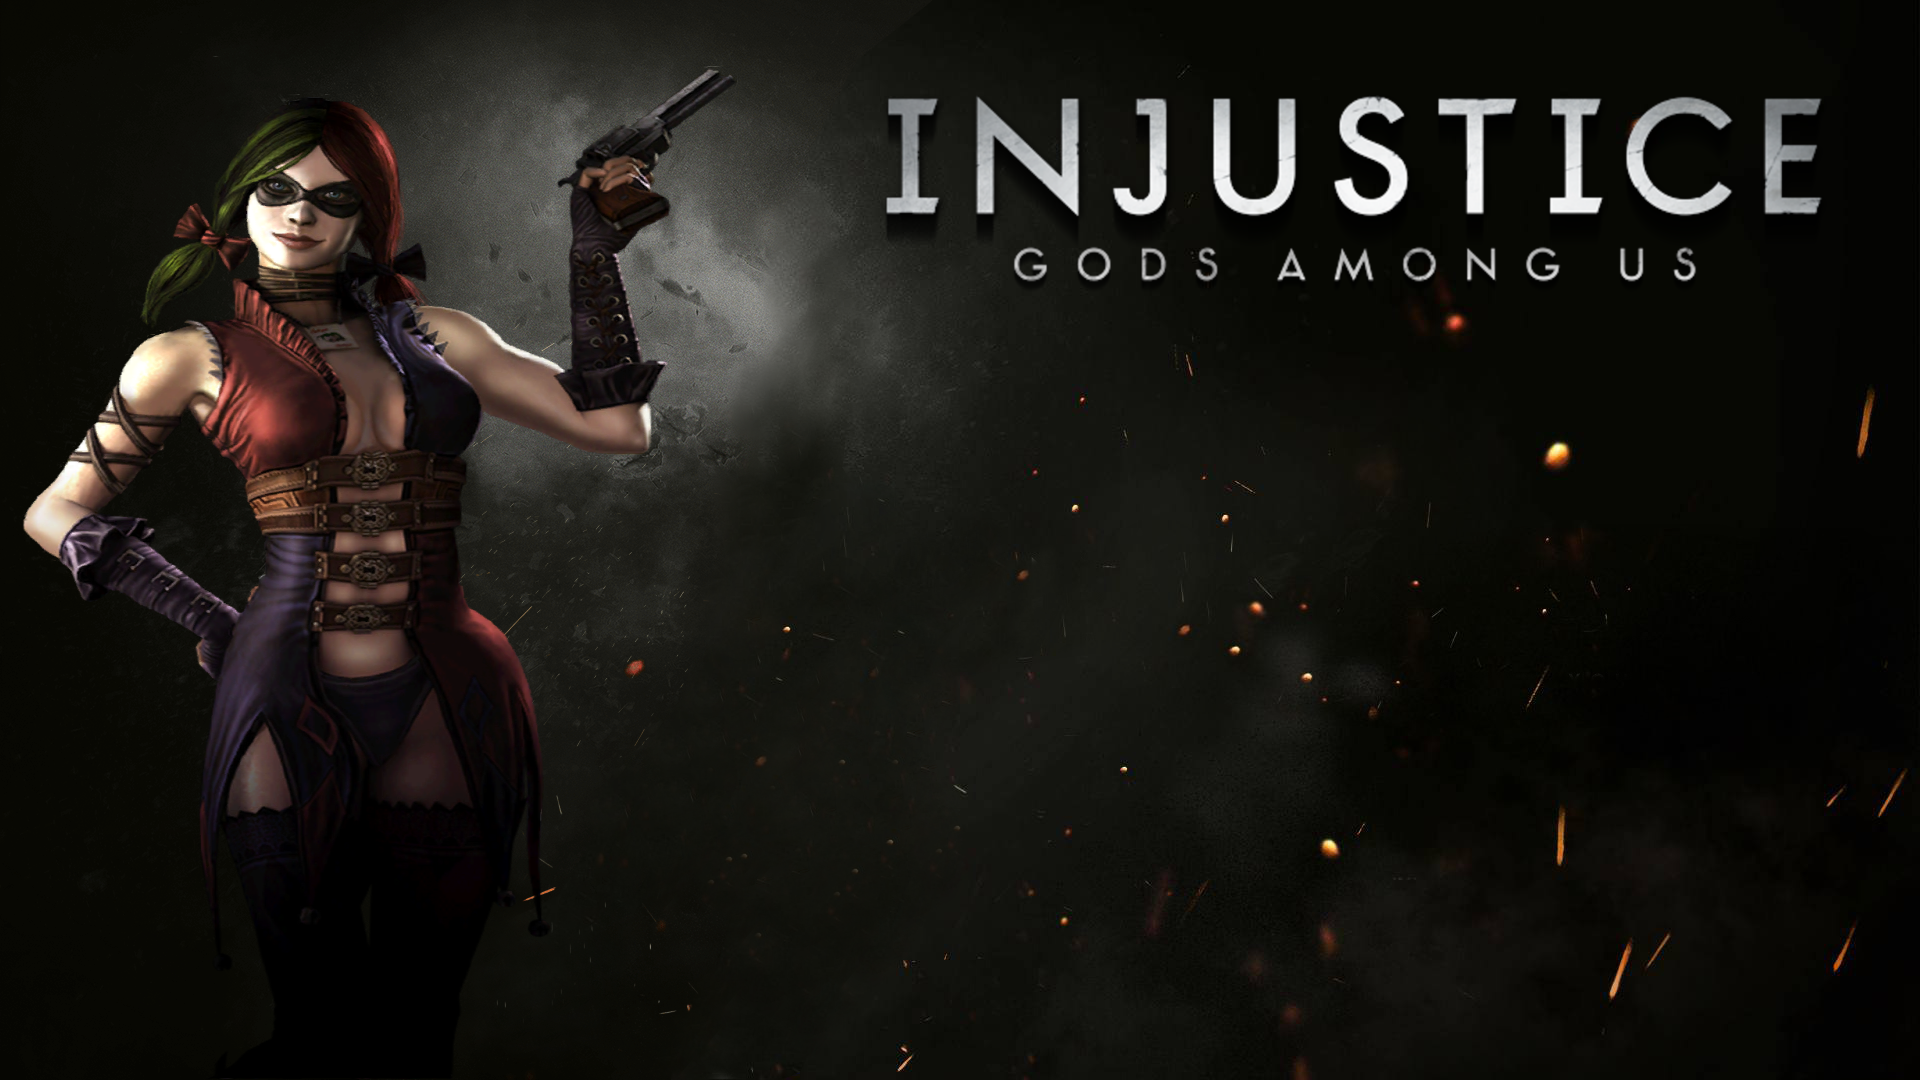 Injustice Gods Among Us How To Unlock Harley Quinn